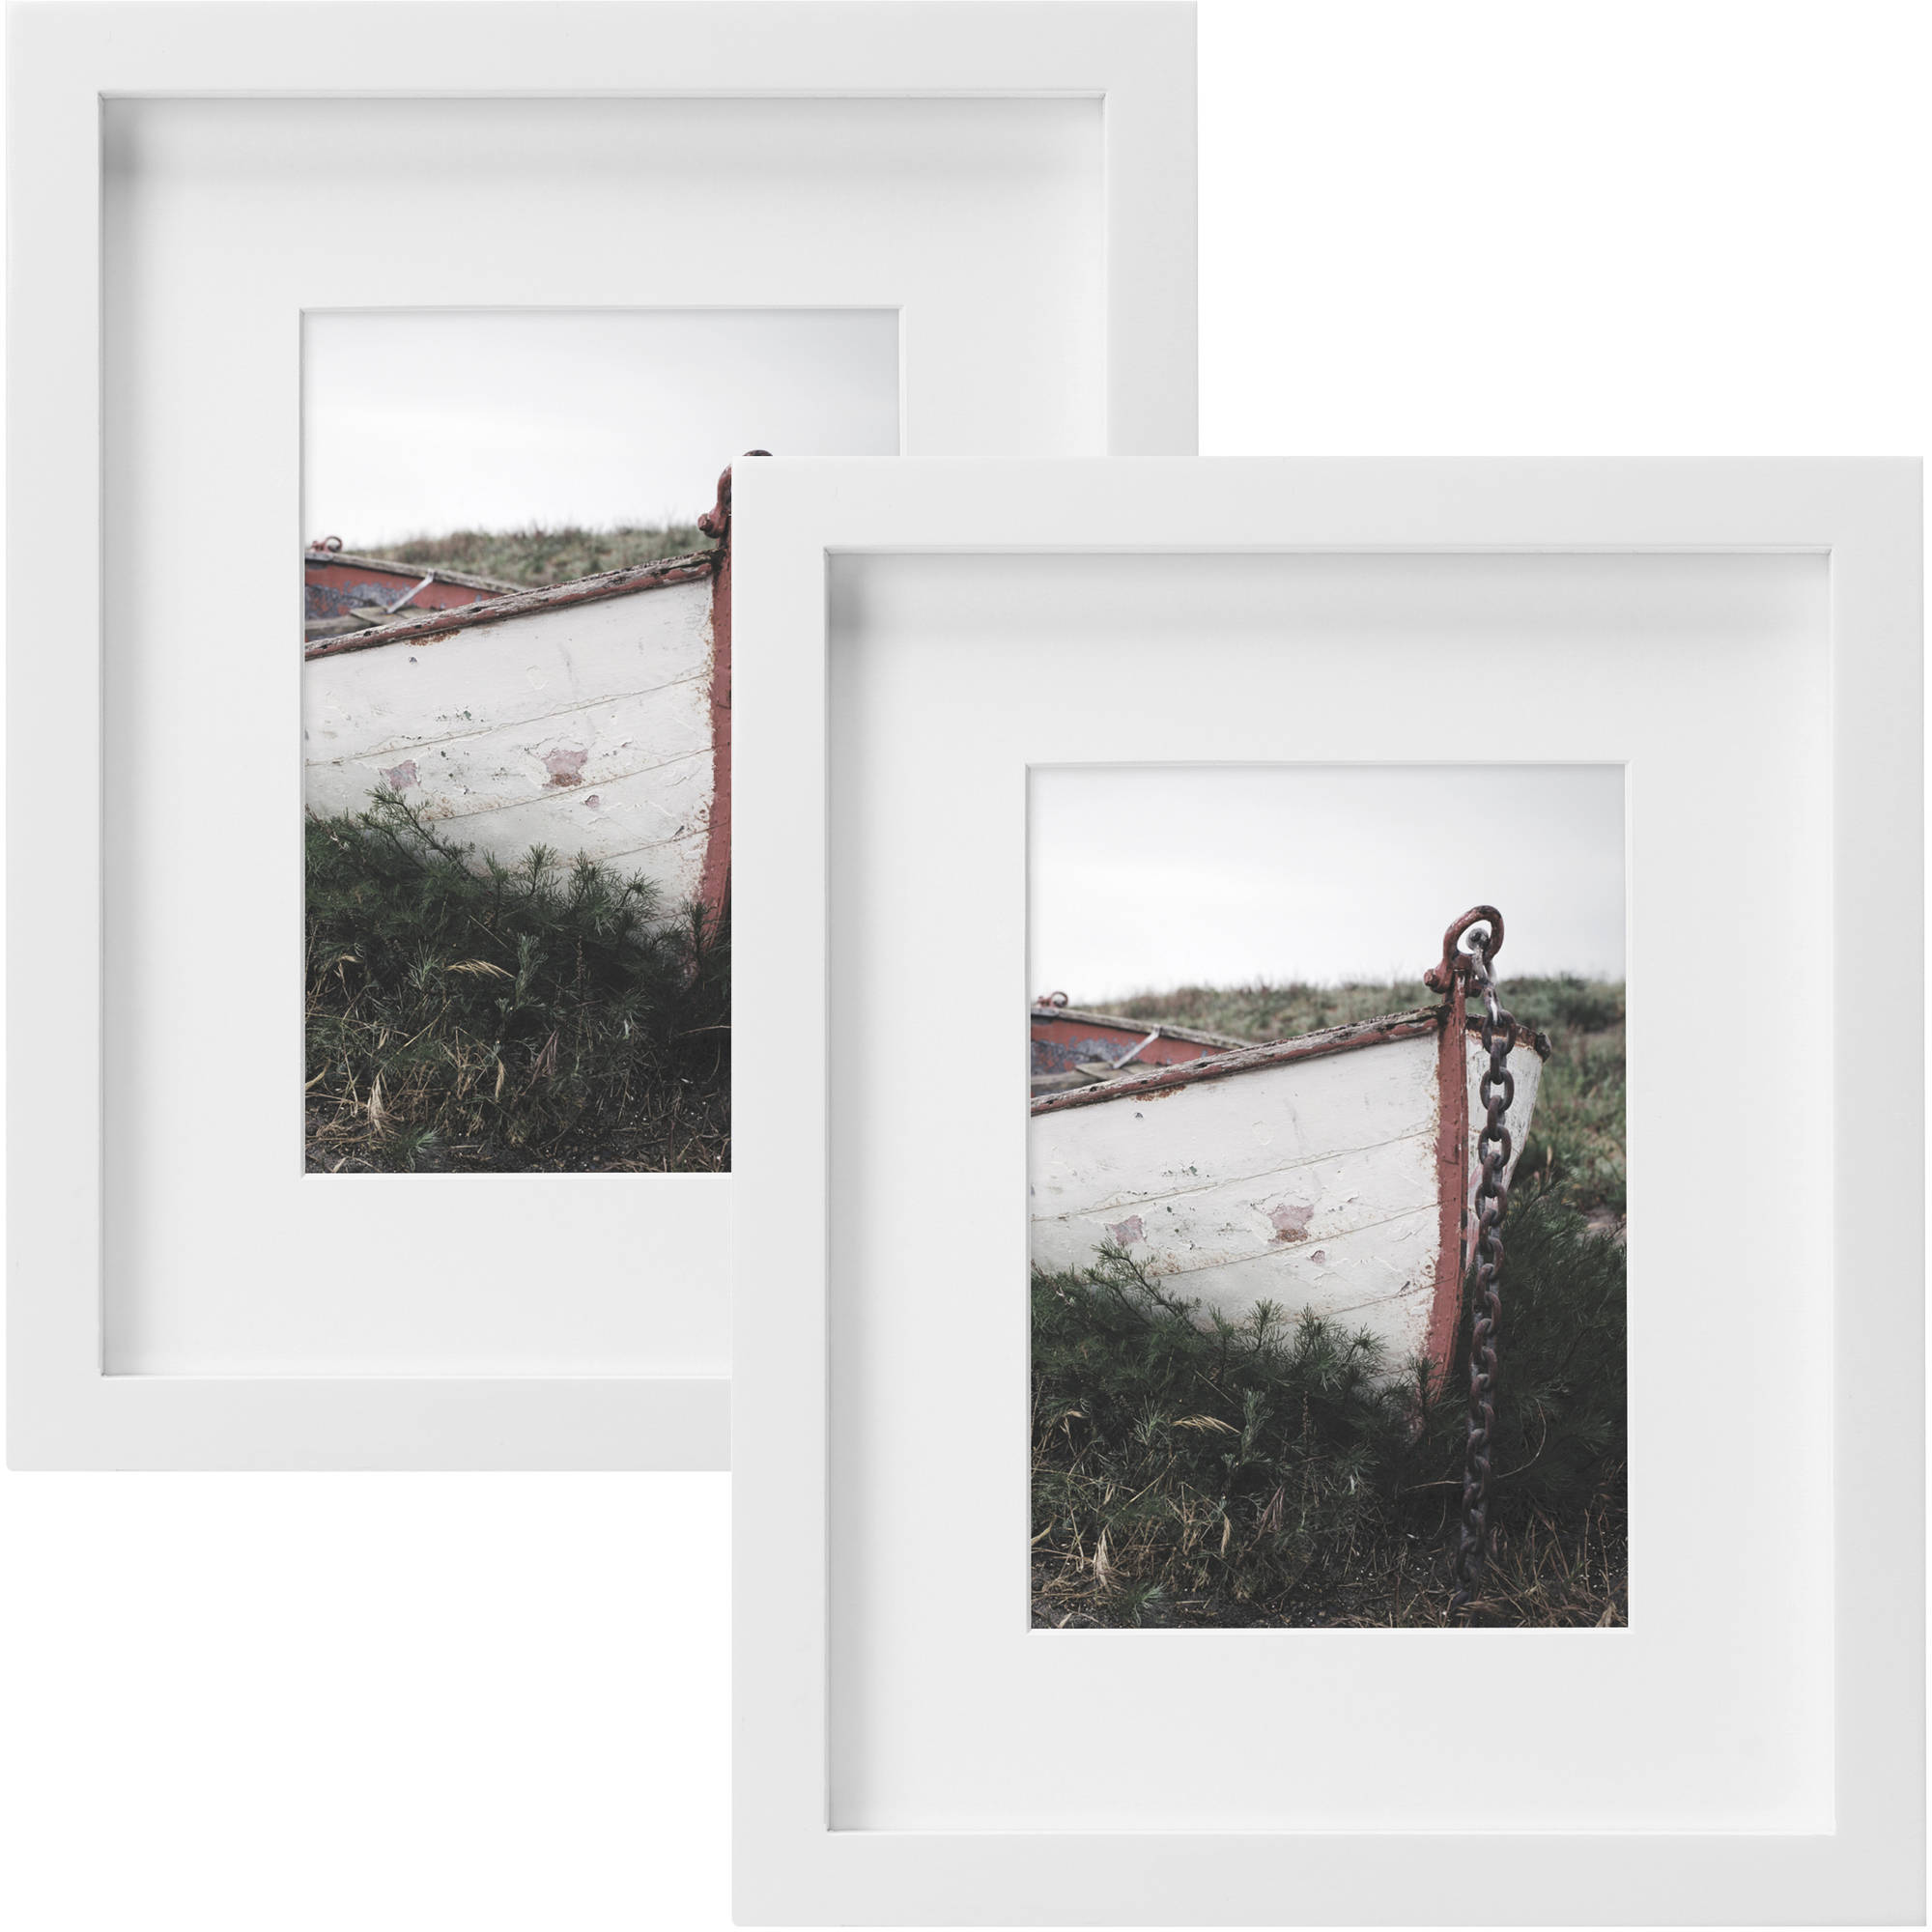 "Better Homes and Gardens Gallery 8"" x 10"" (20.32 cm x 25.4 cm) Matted to 5"" x 7"" (12.7 cm x 17.78 cm) Picture Frame, White, Set of 2"